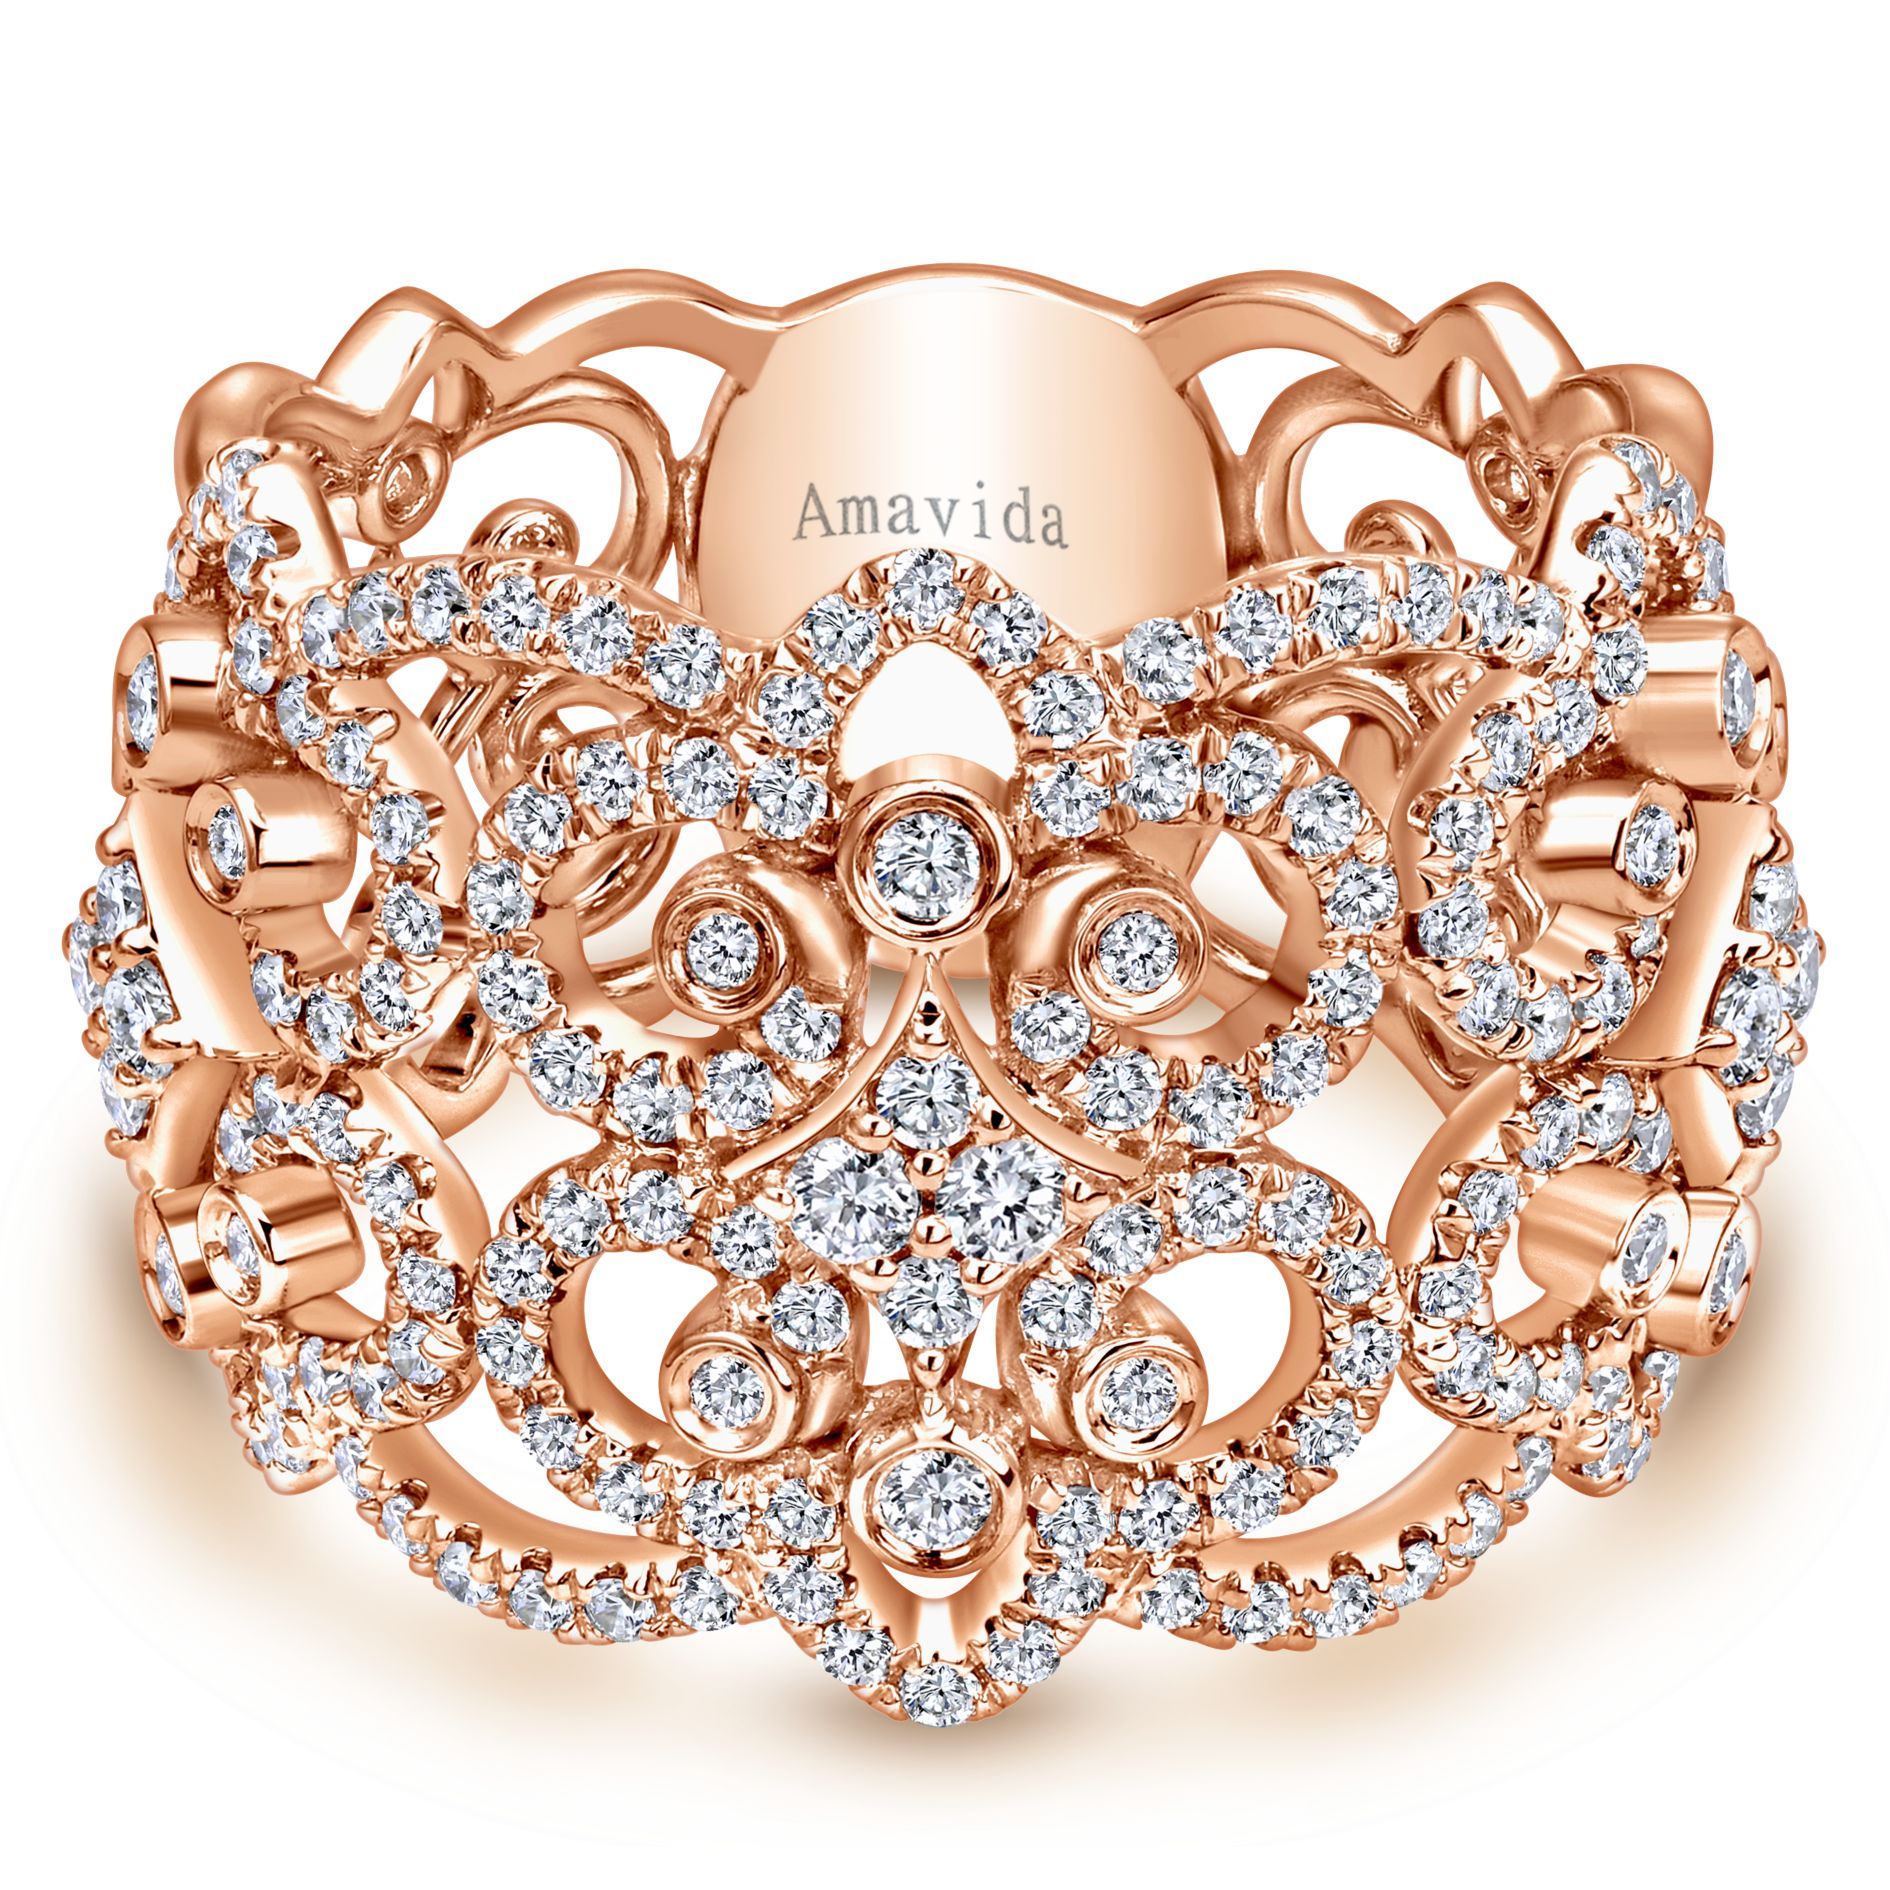 ROSE GOLD WIDE BAND DIAMOND LADIES RING by Gabriel & Co